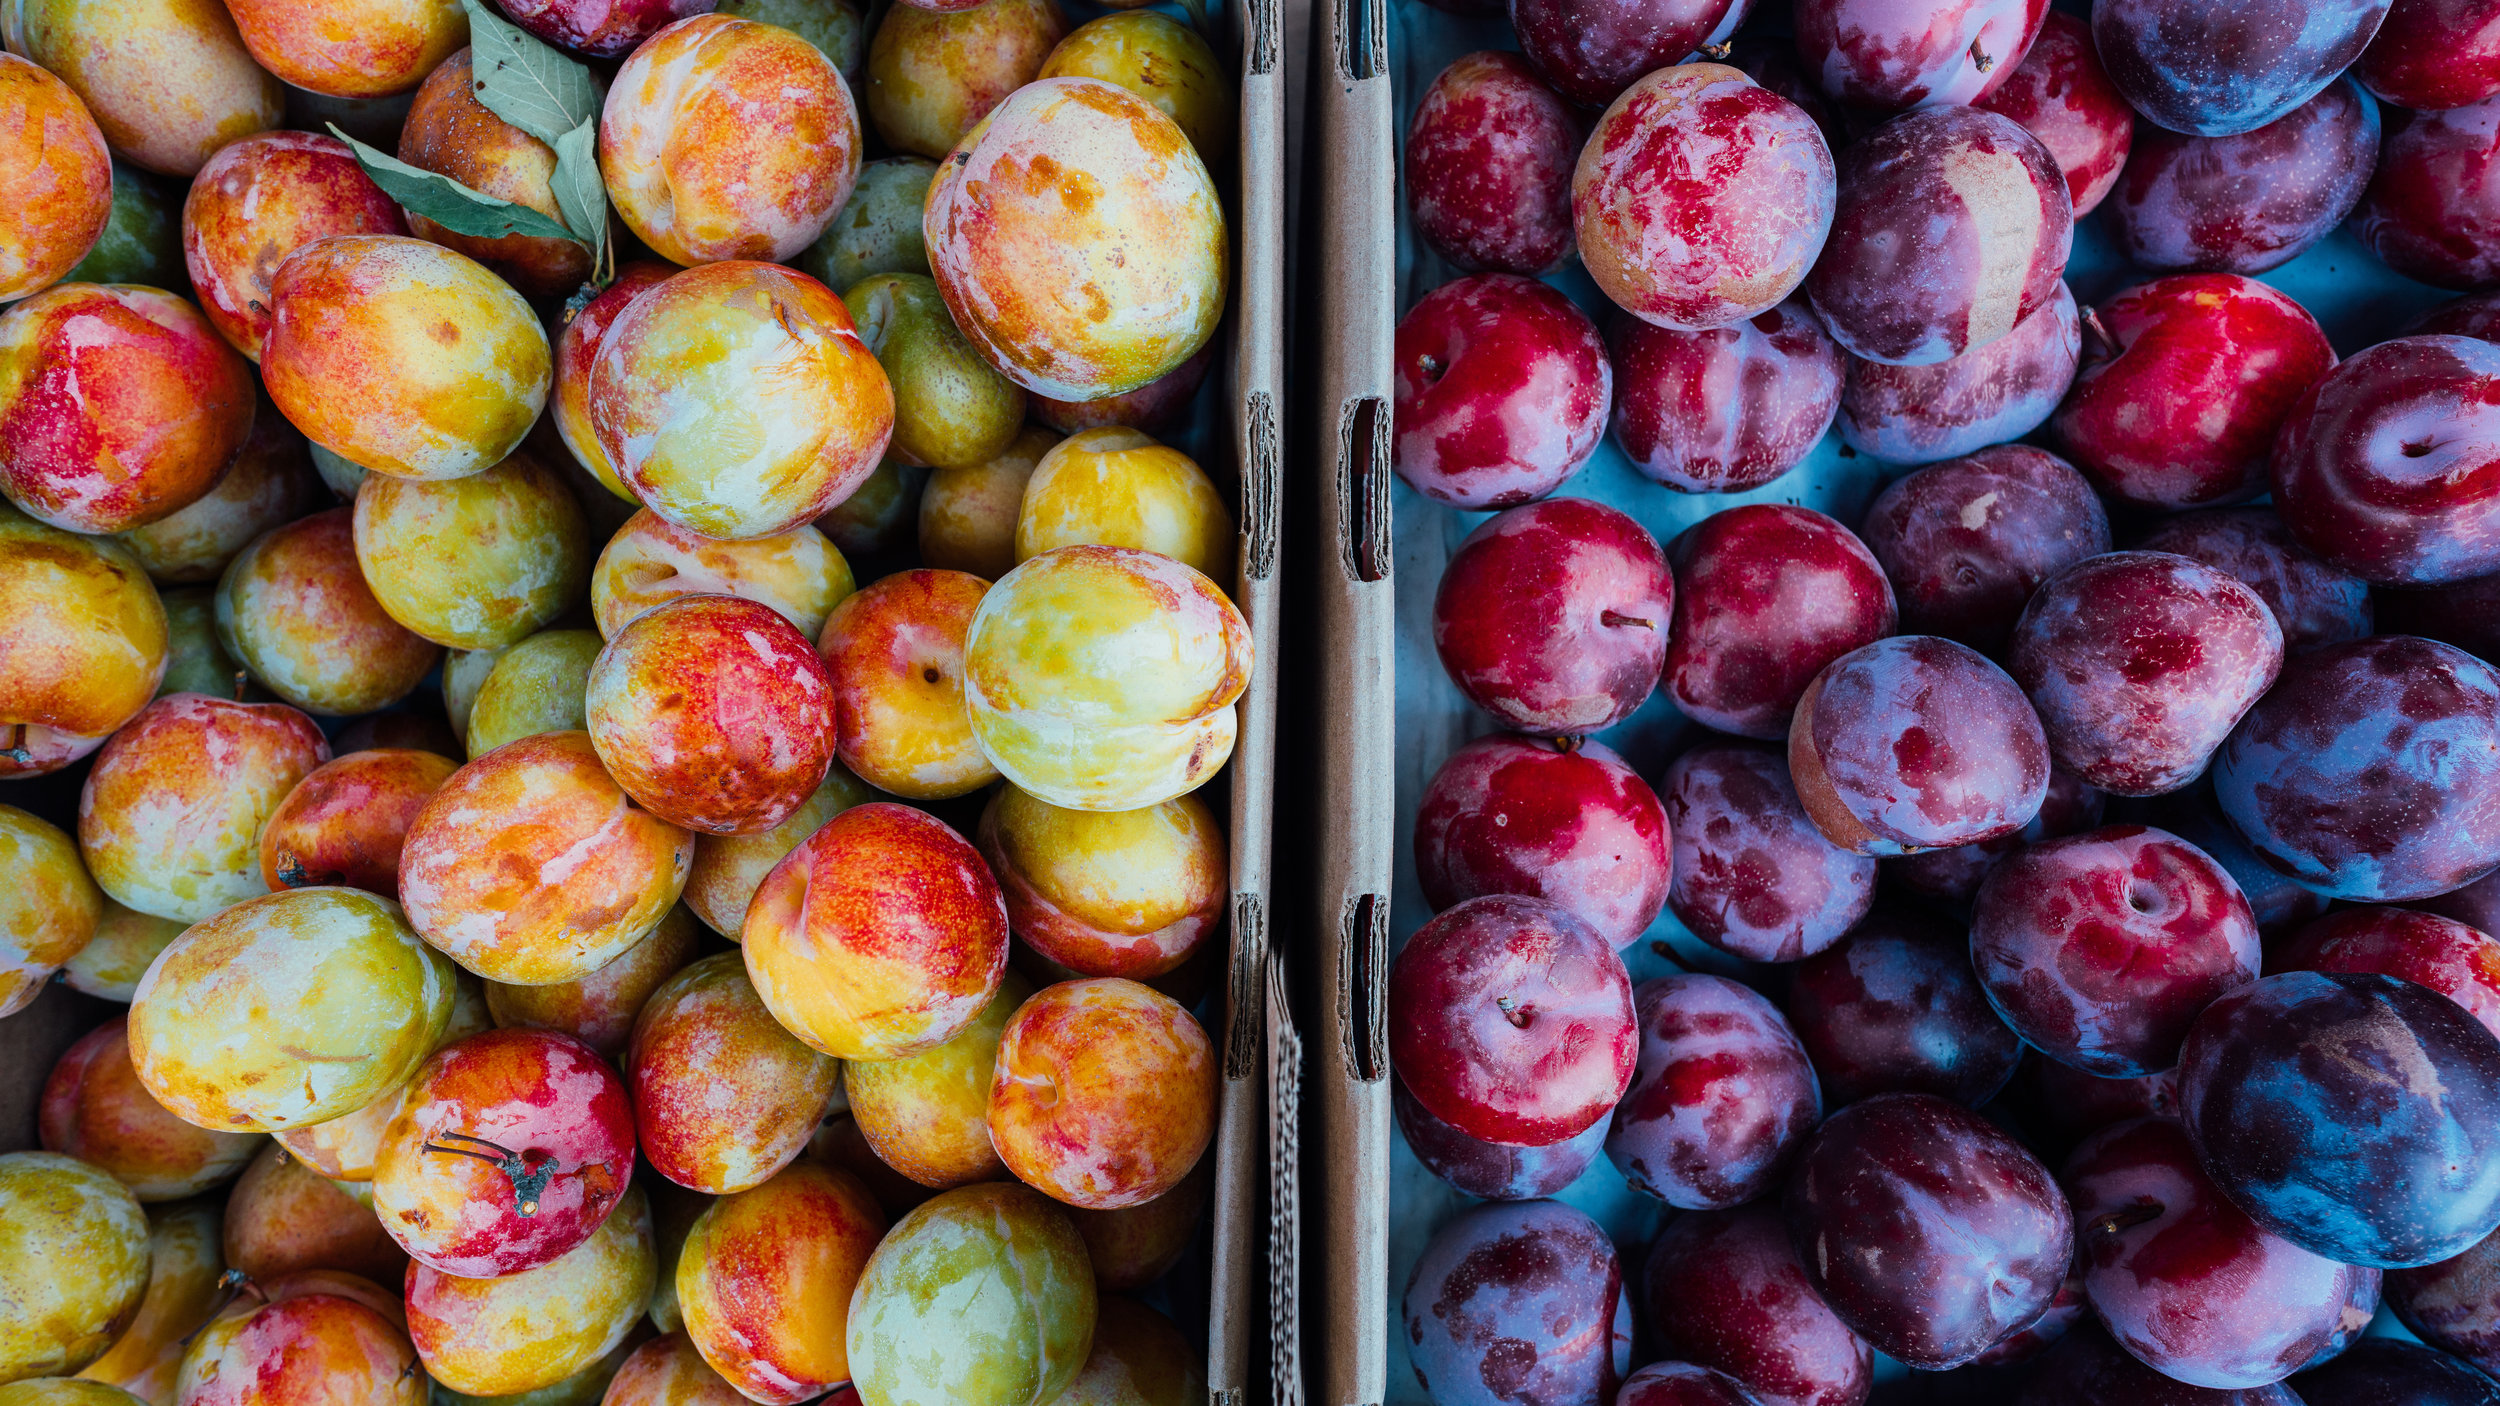 Three times during the harvest season, the Portland Fruit Tree Project will offer Members a  Fruit Share Box  filled with freshly harvested local fruit such as apples, pears, plums, or persimmons. Fruit Share Boxes will be picked up by Members - details will be communicated to Members regarding pickup dates and locations!